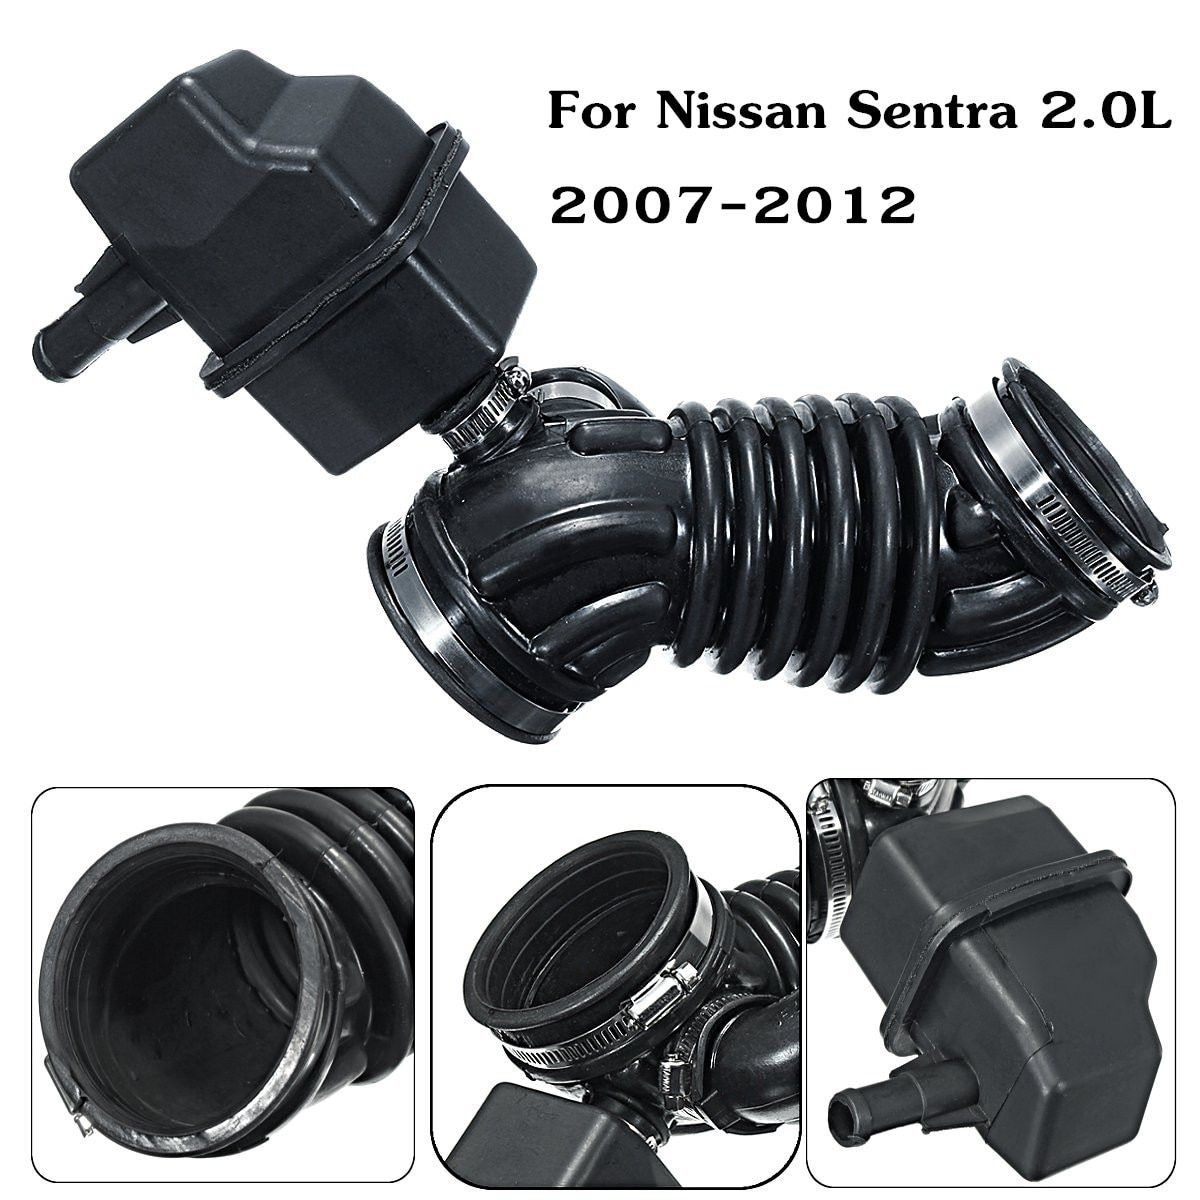 1pc Air Intake Hose Pipe Tube 16576ET00A 696-003 For Nissan/Sentra 2 L 2007-2012